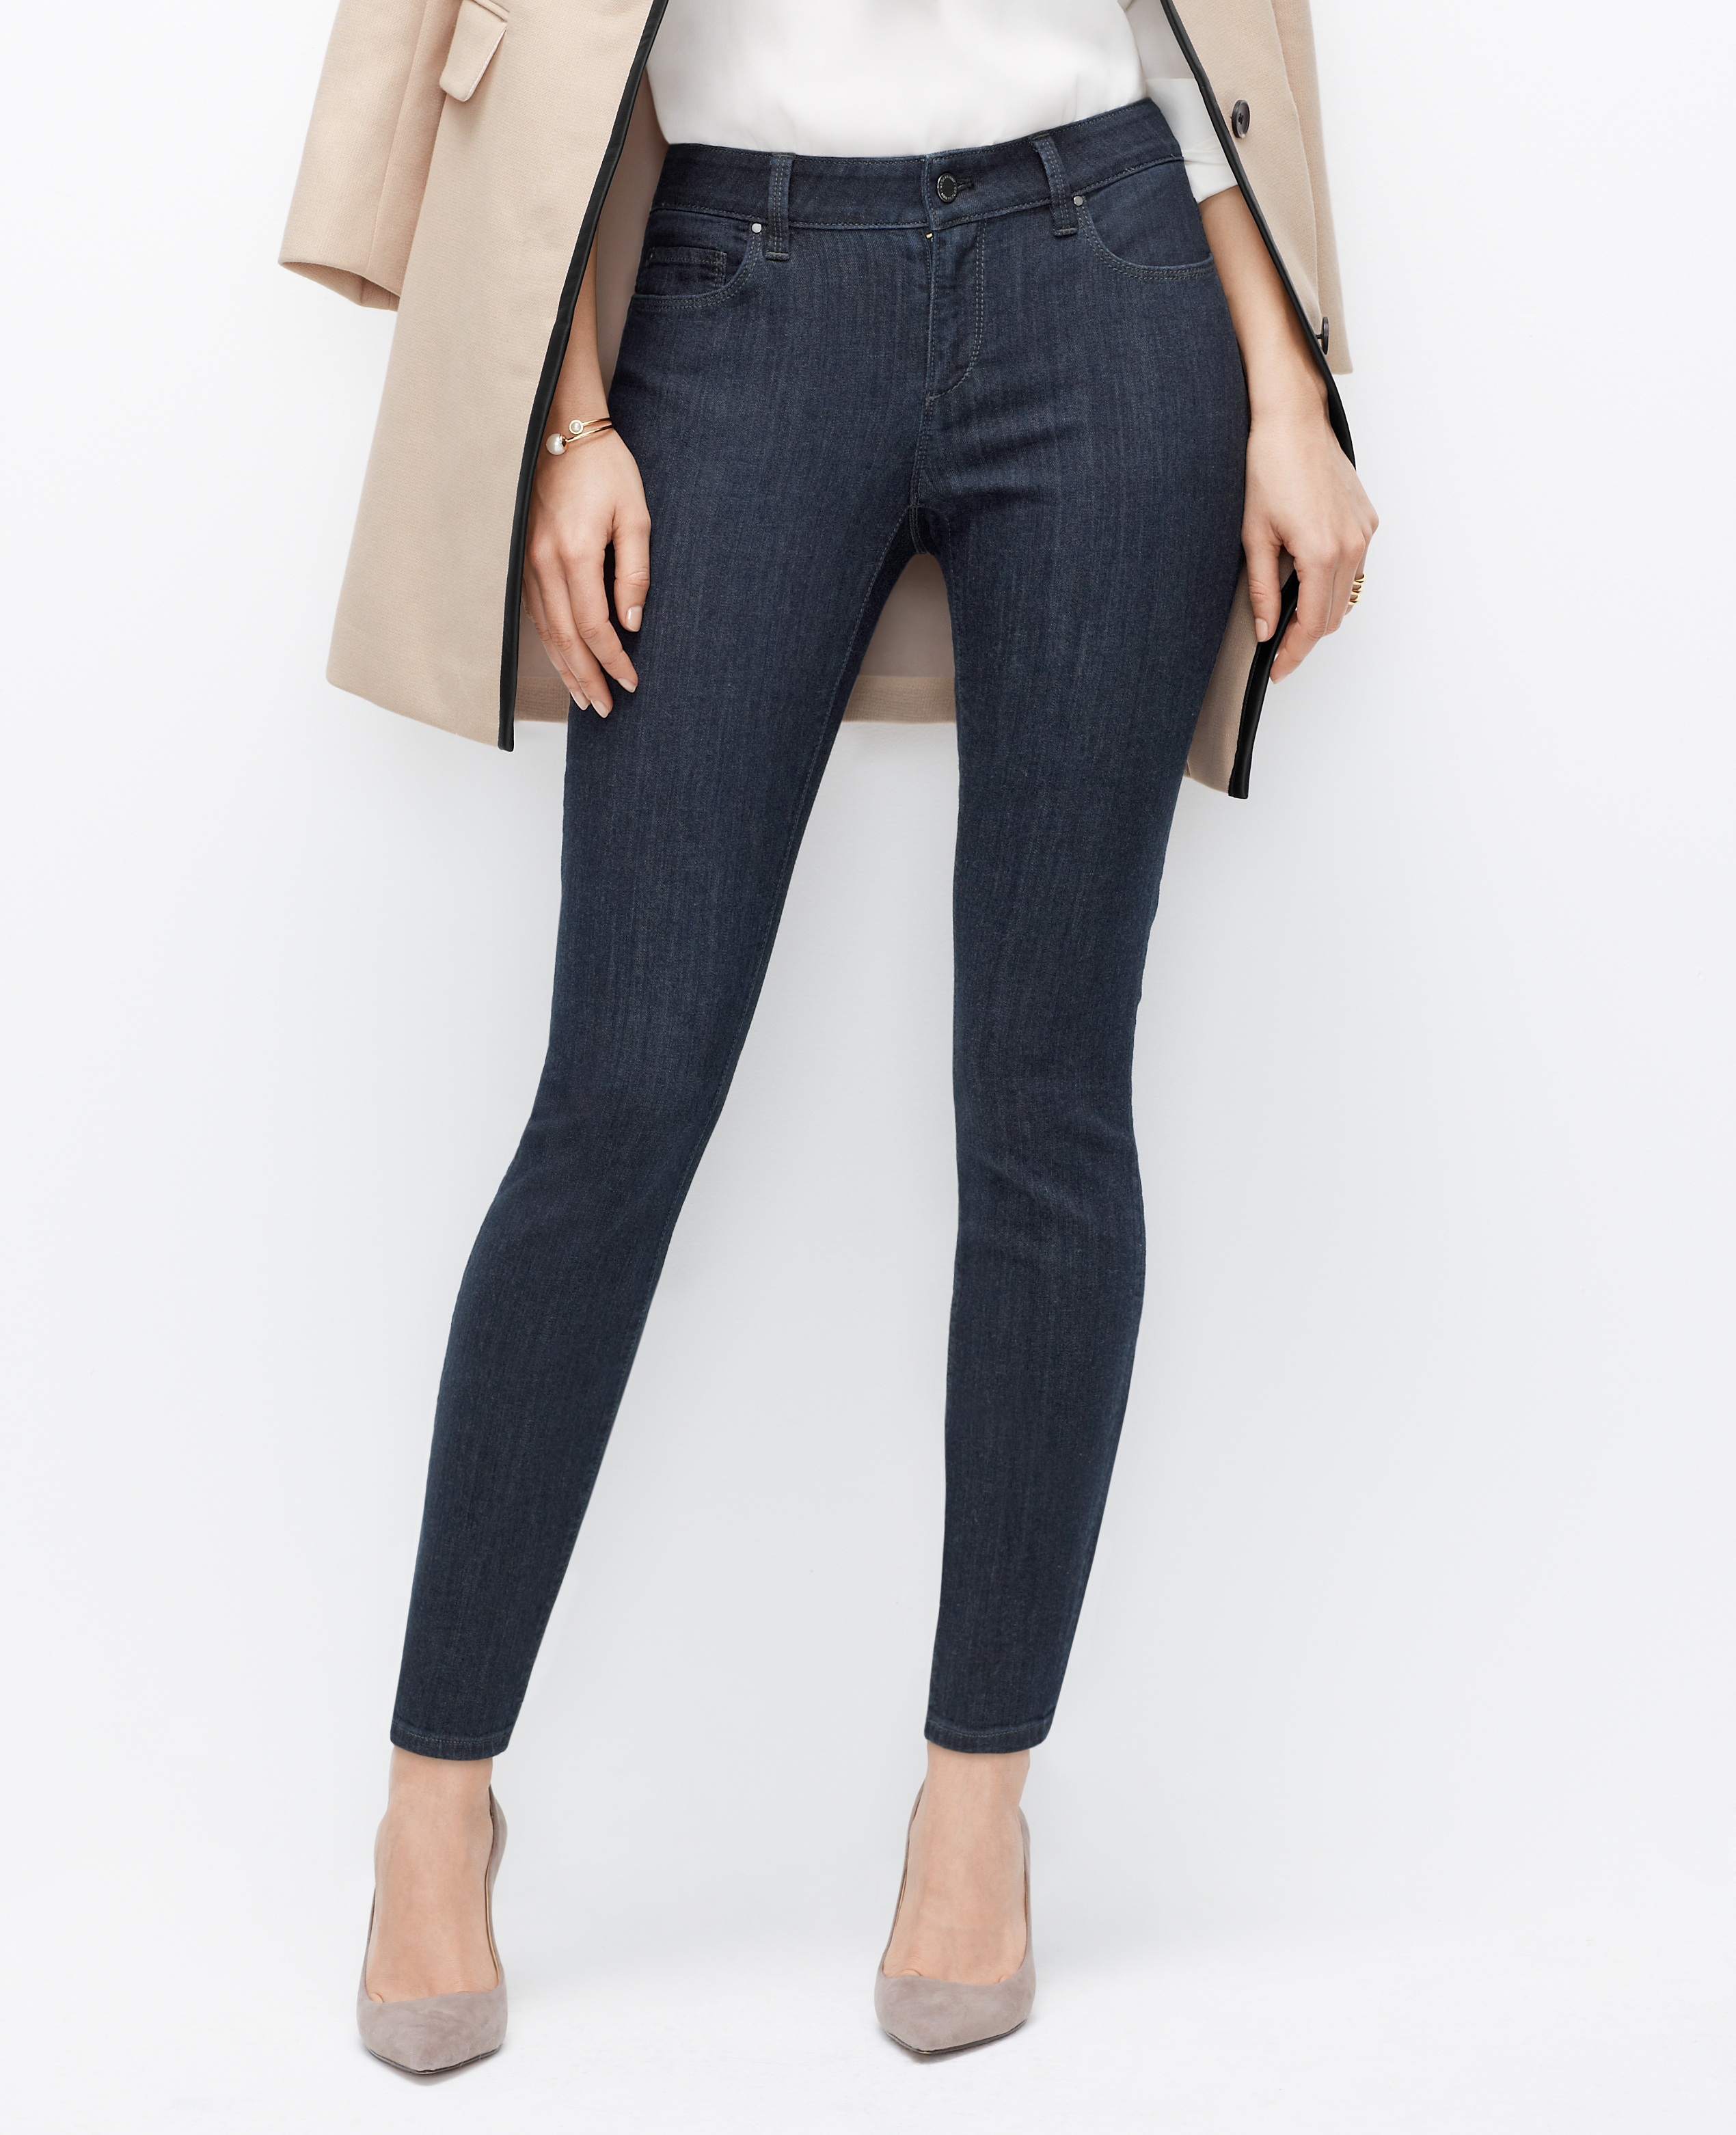 Best Skinny Jeans For Curvy Black Girl Figure Black women can't always wear traditional jeans that other women can fit into, due to their curvaceous shapes and dangerous curves. When it comes to wearing skinny jeans, most black women have to go out of their way in order to find jeans that can pull over the hump in the bump.